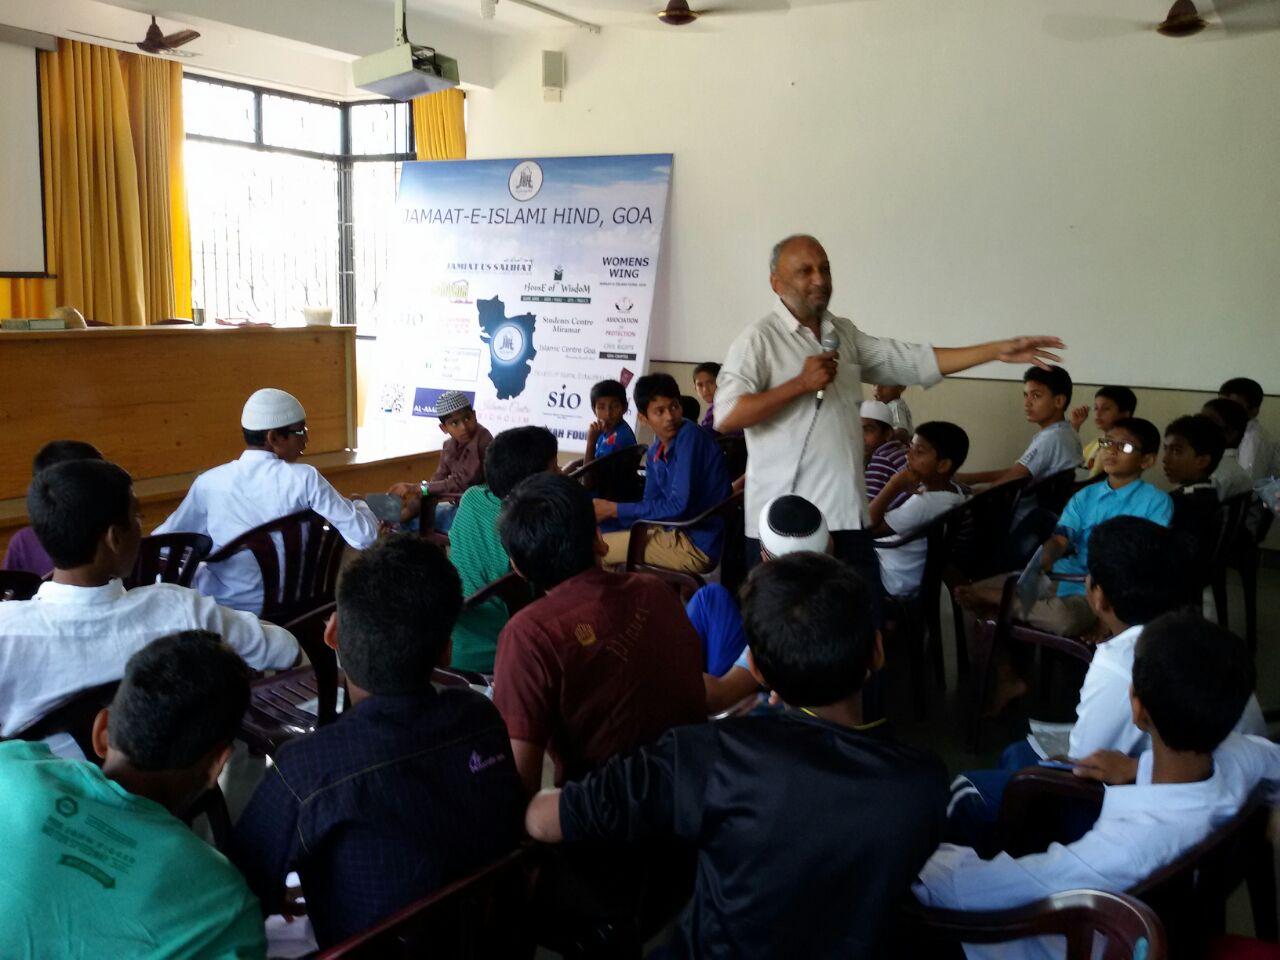 Janab Abdul Waheed Khan (president JIH GOA) Interacting with Junior Associates